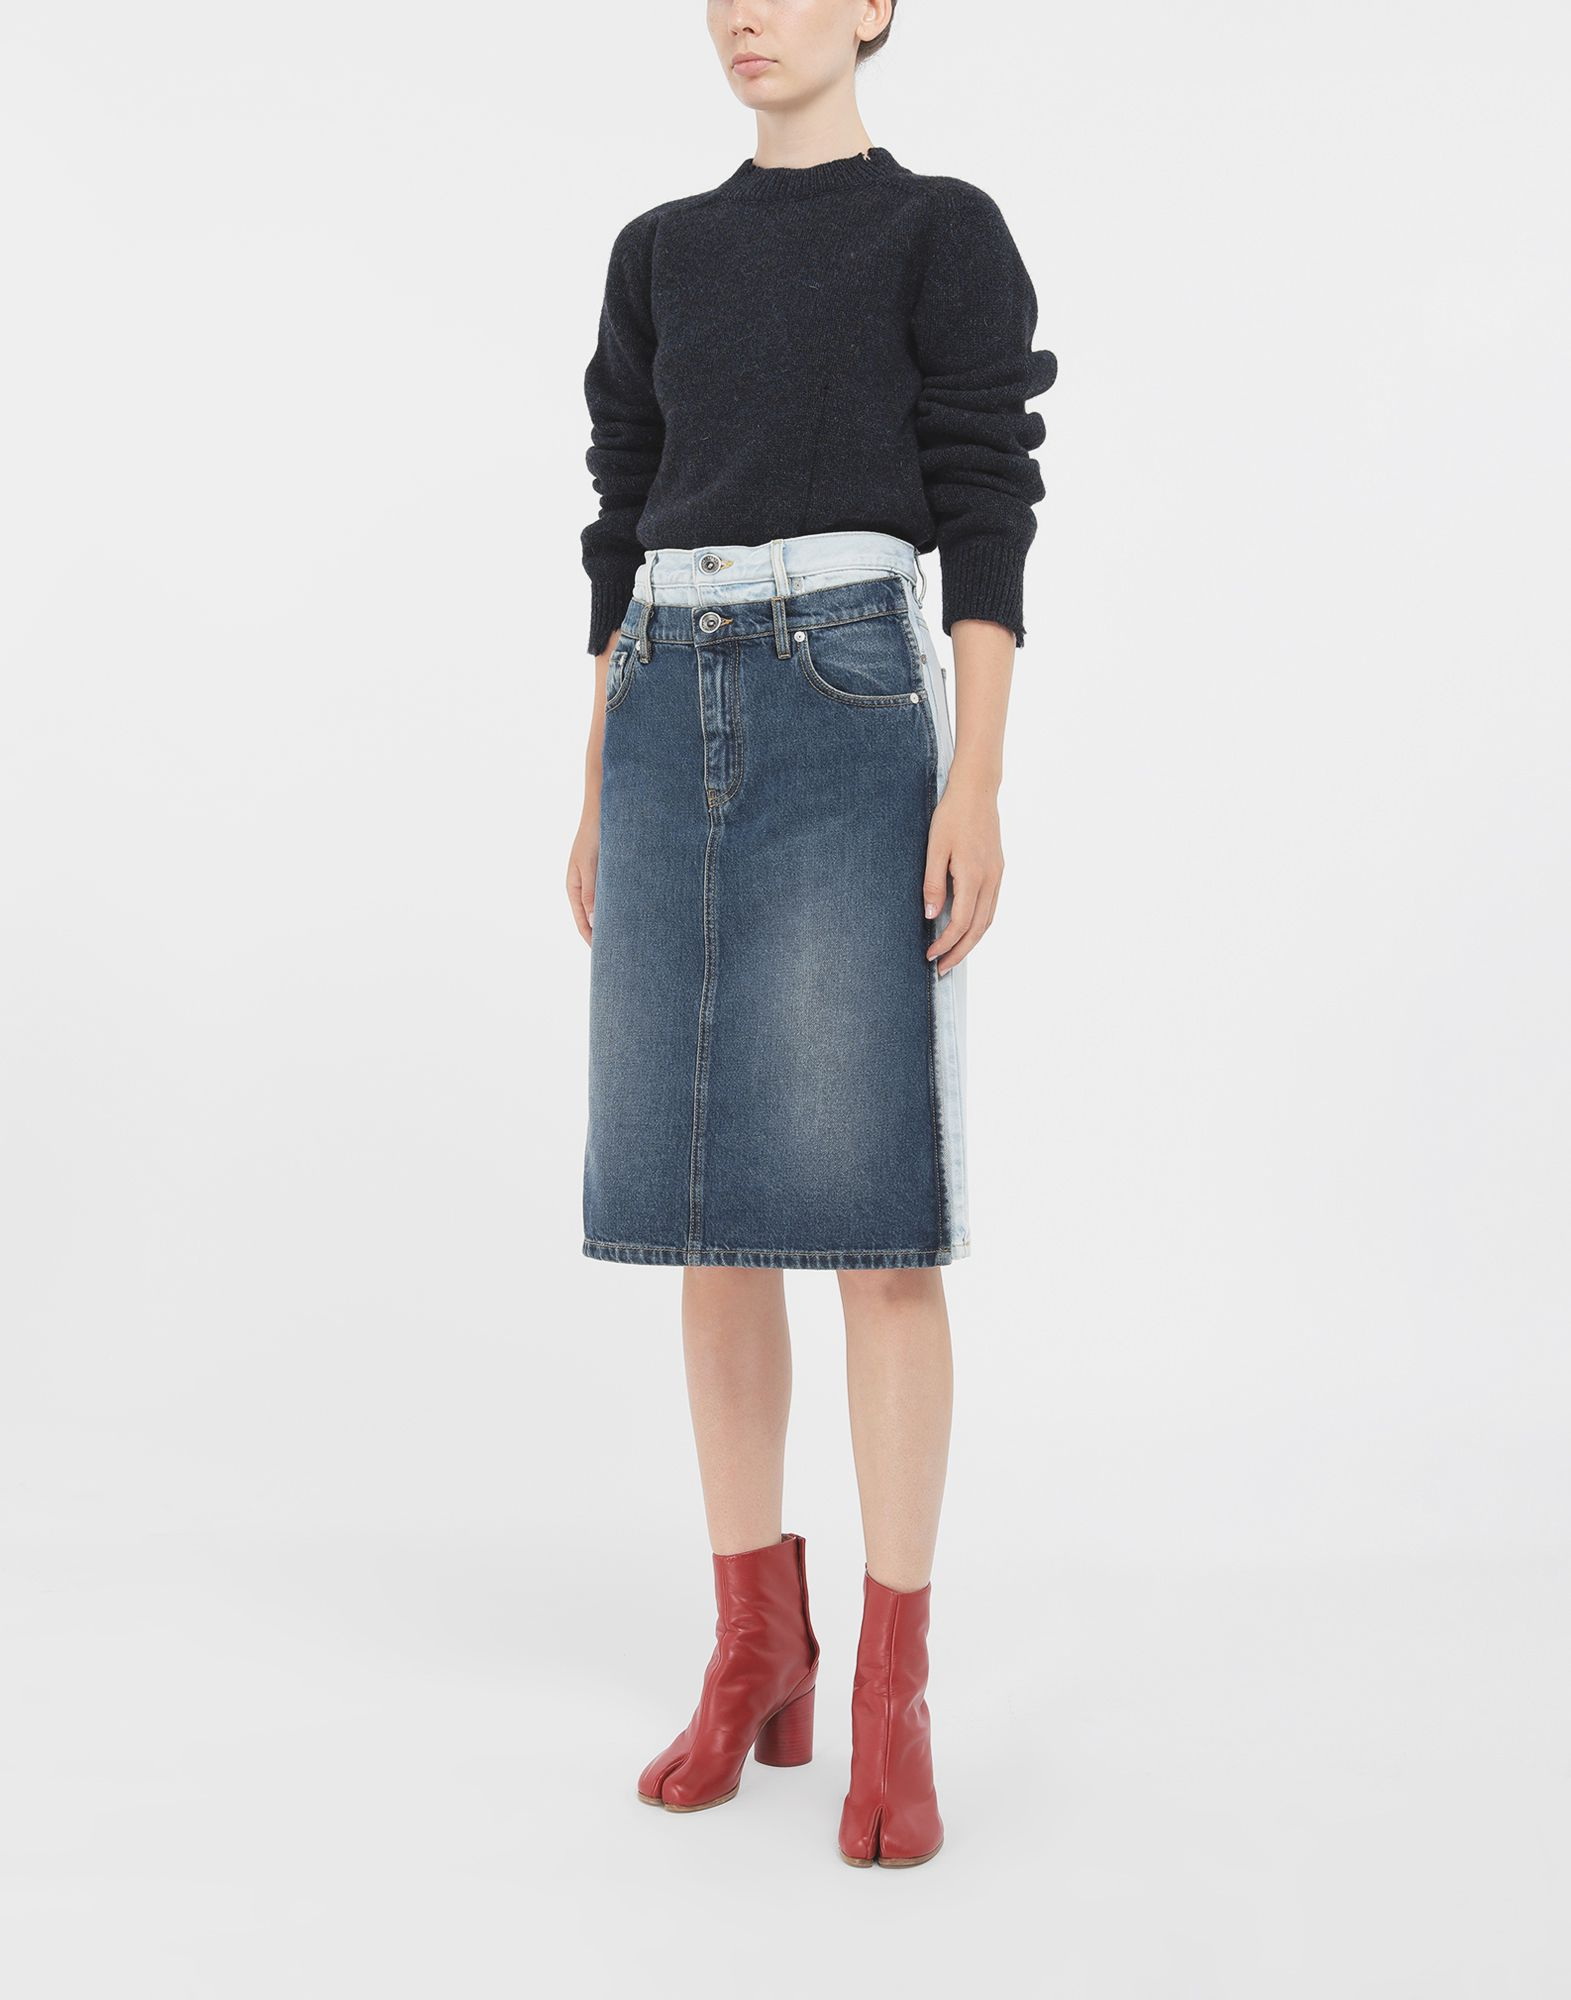 MAISON MARGIELA Spliced skirt 3/4 length skirt Woman d